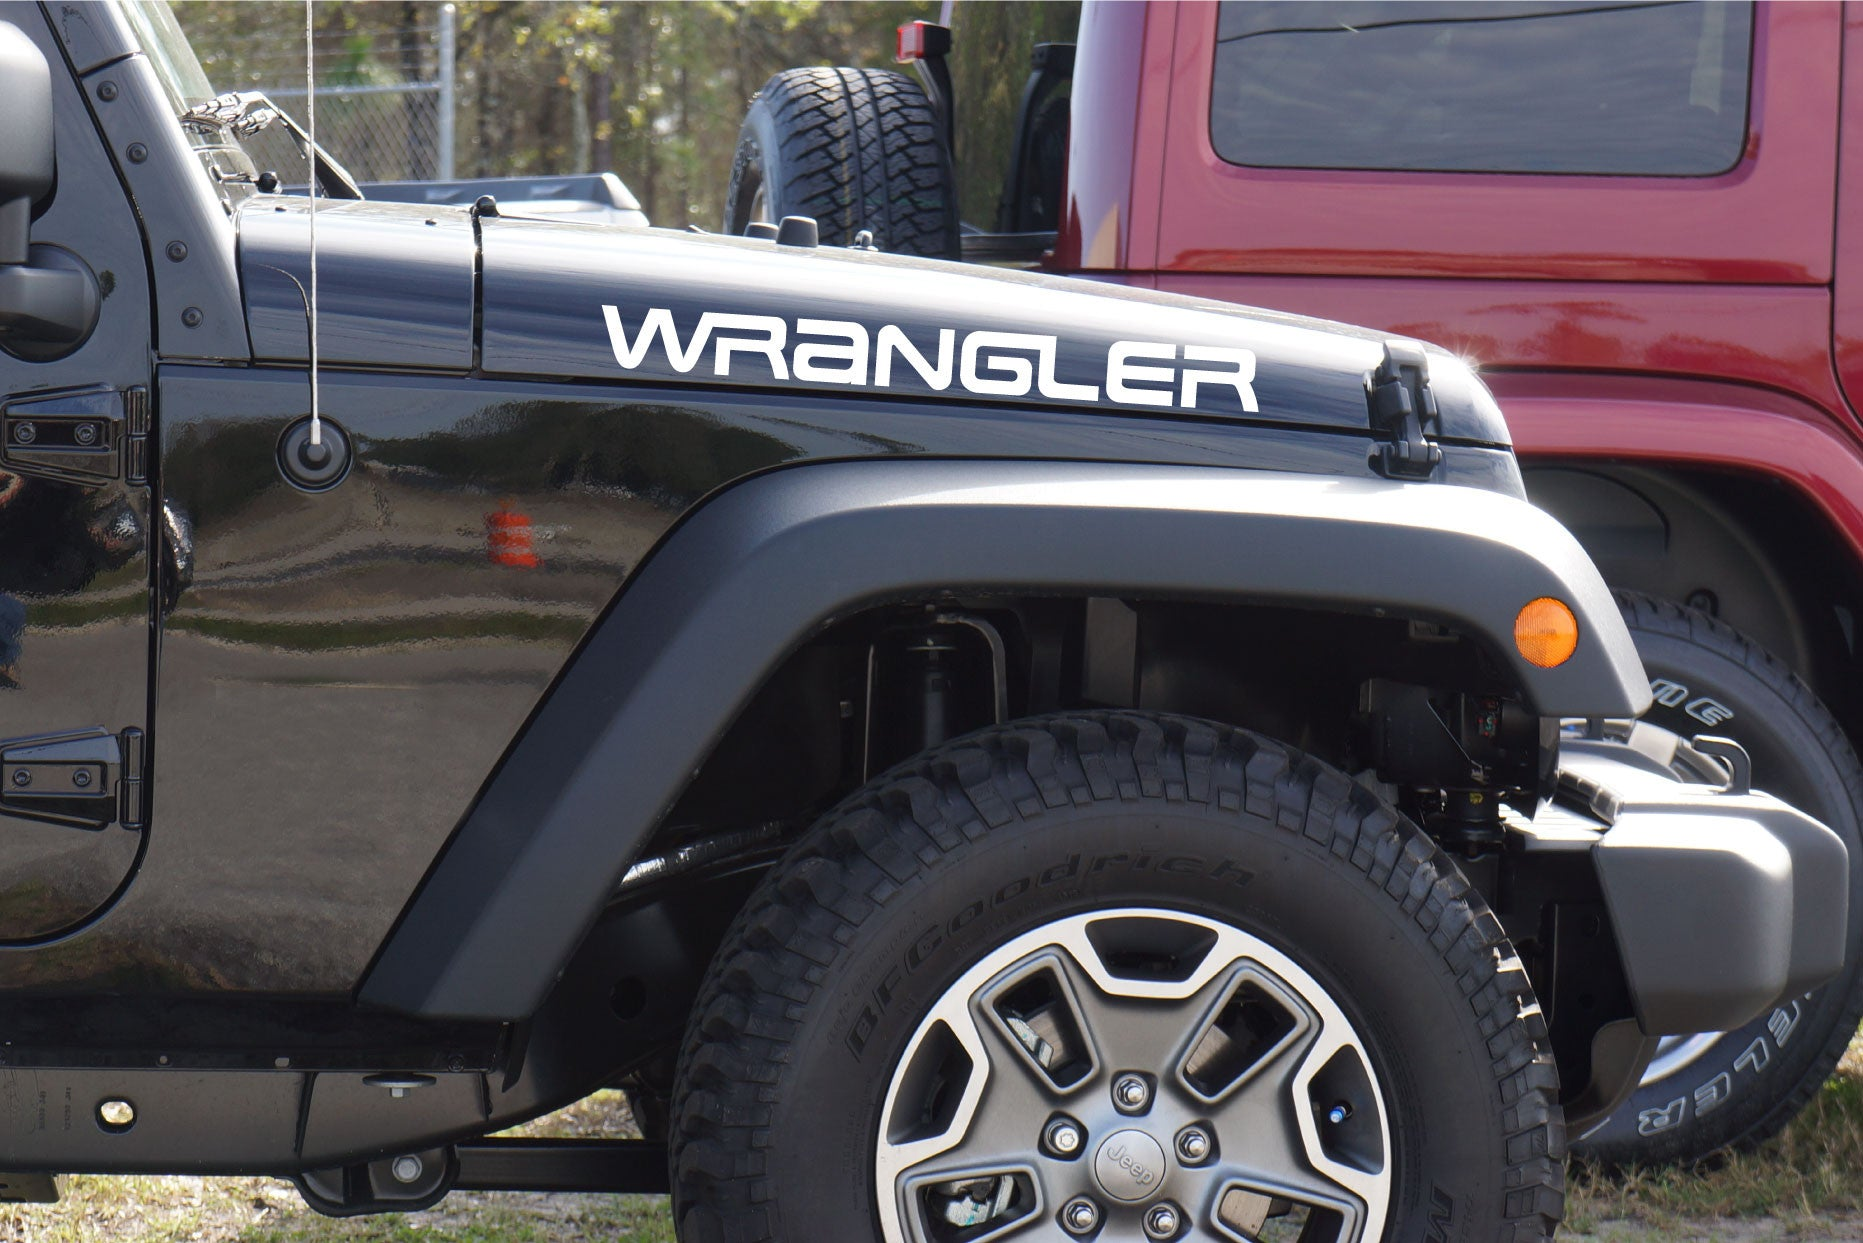 Jeep Wrangler Extra Large Hood Decals Yj The Pixel Hut